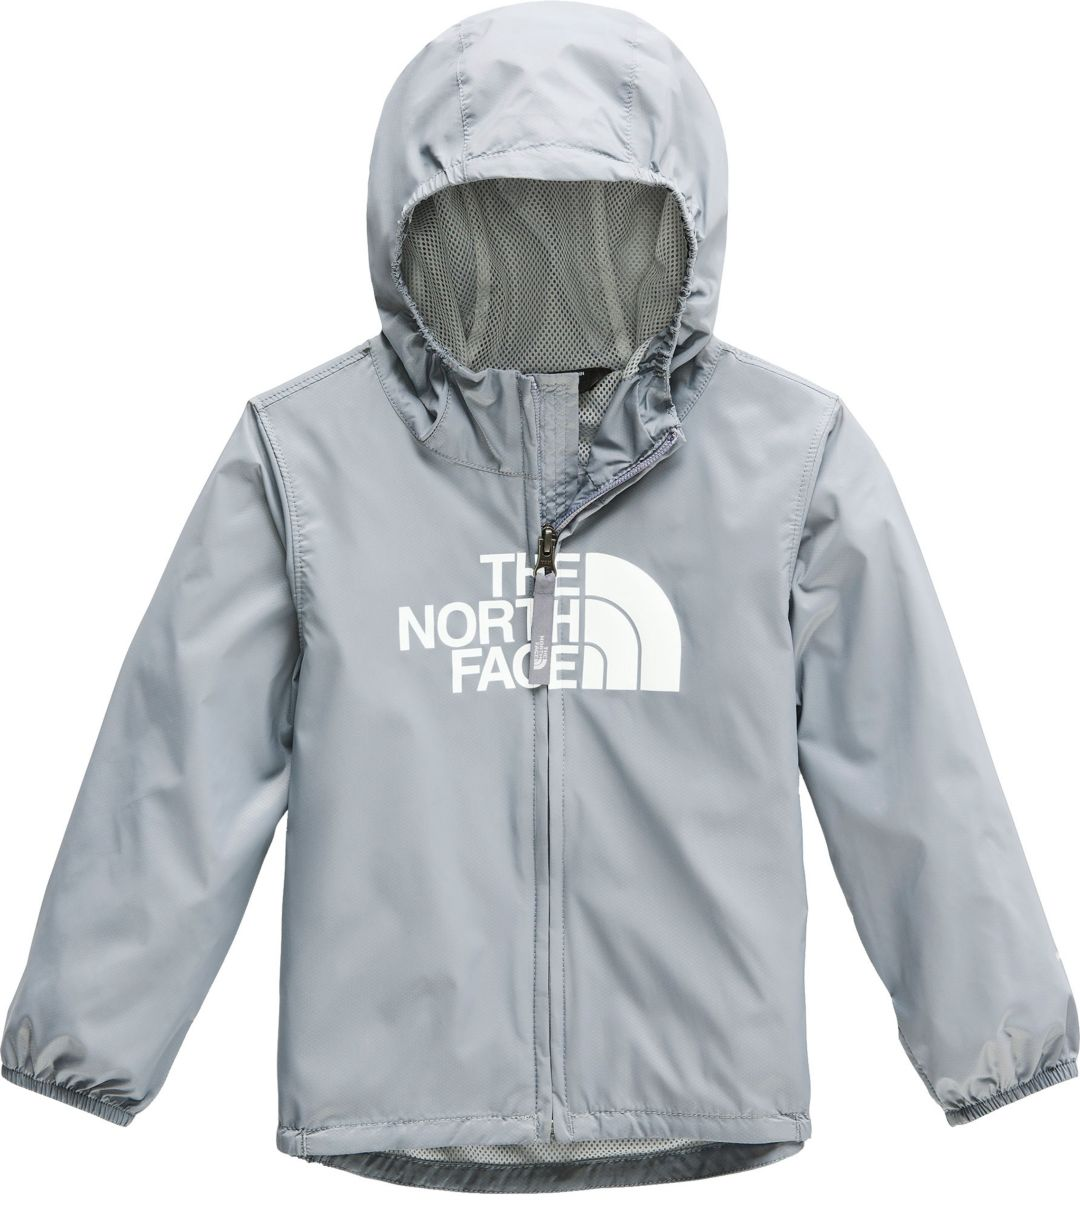 1e968c441 The North Face Toddler Boys' Flurry Wind Jacket | DICK'S Sporting Goods